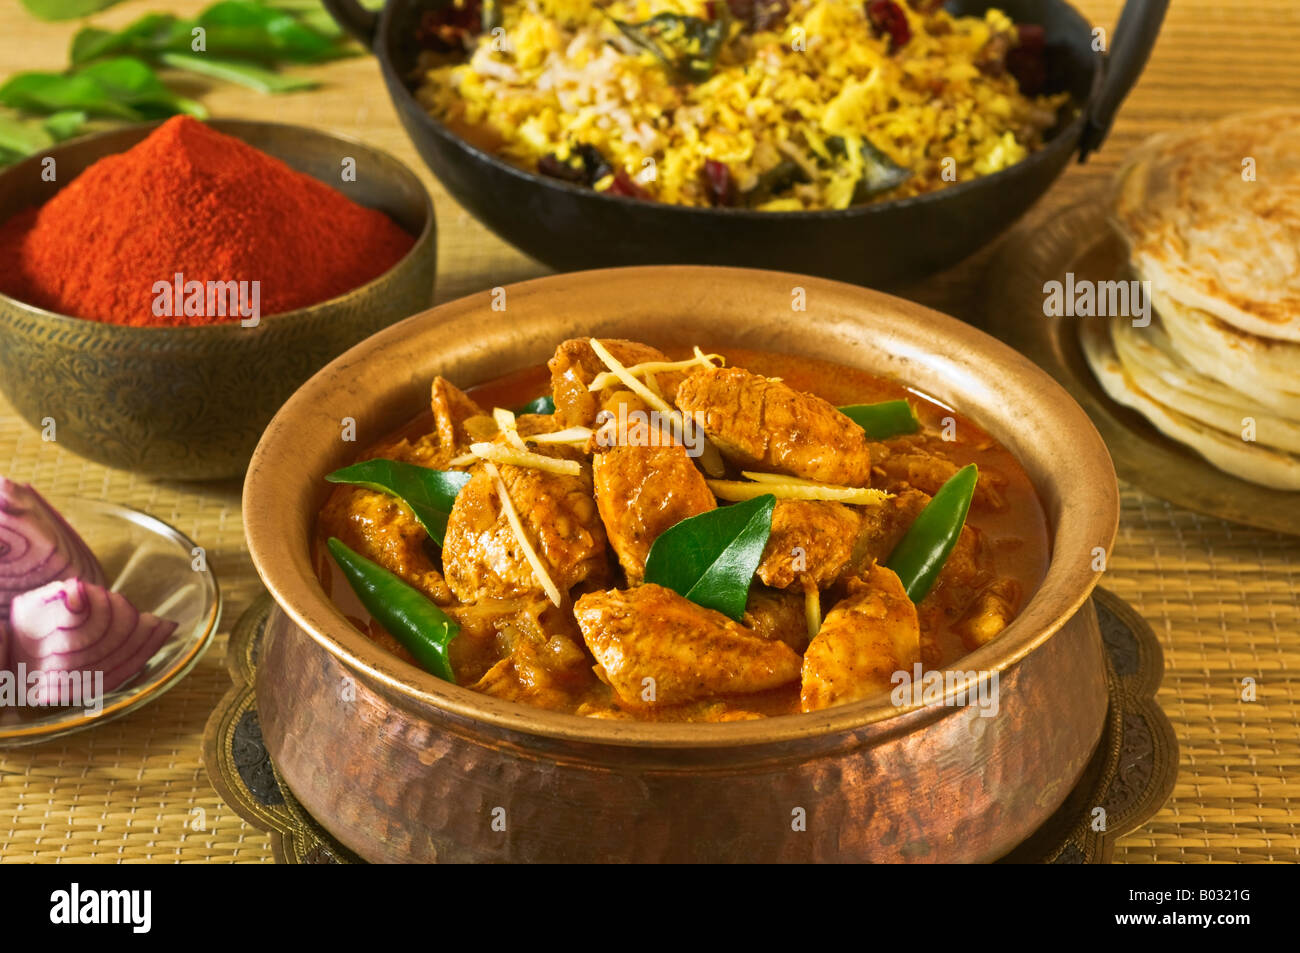 Chicken vindaloo curry india food stock photo 17277836 alamy chicken vindaloo curry india food forumfinder Images